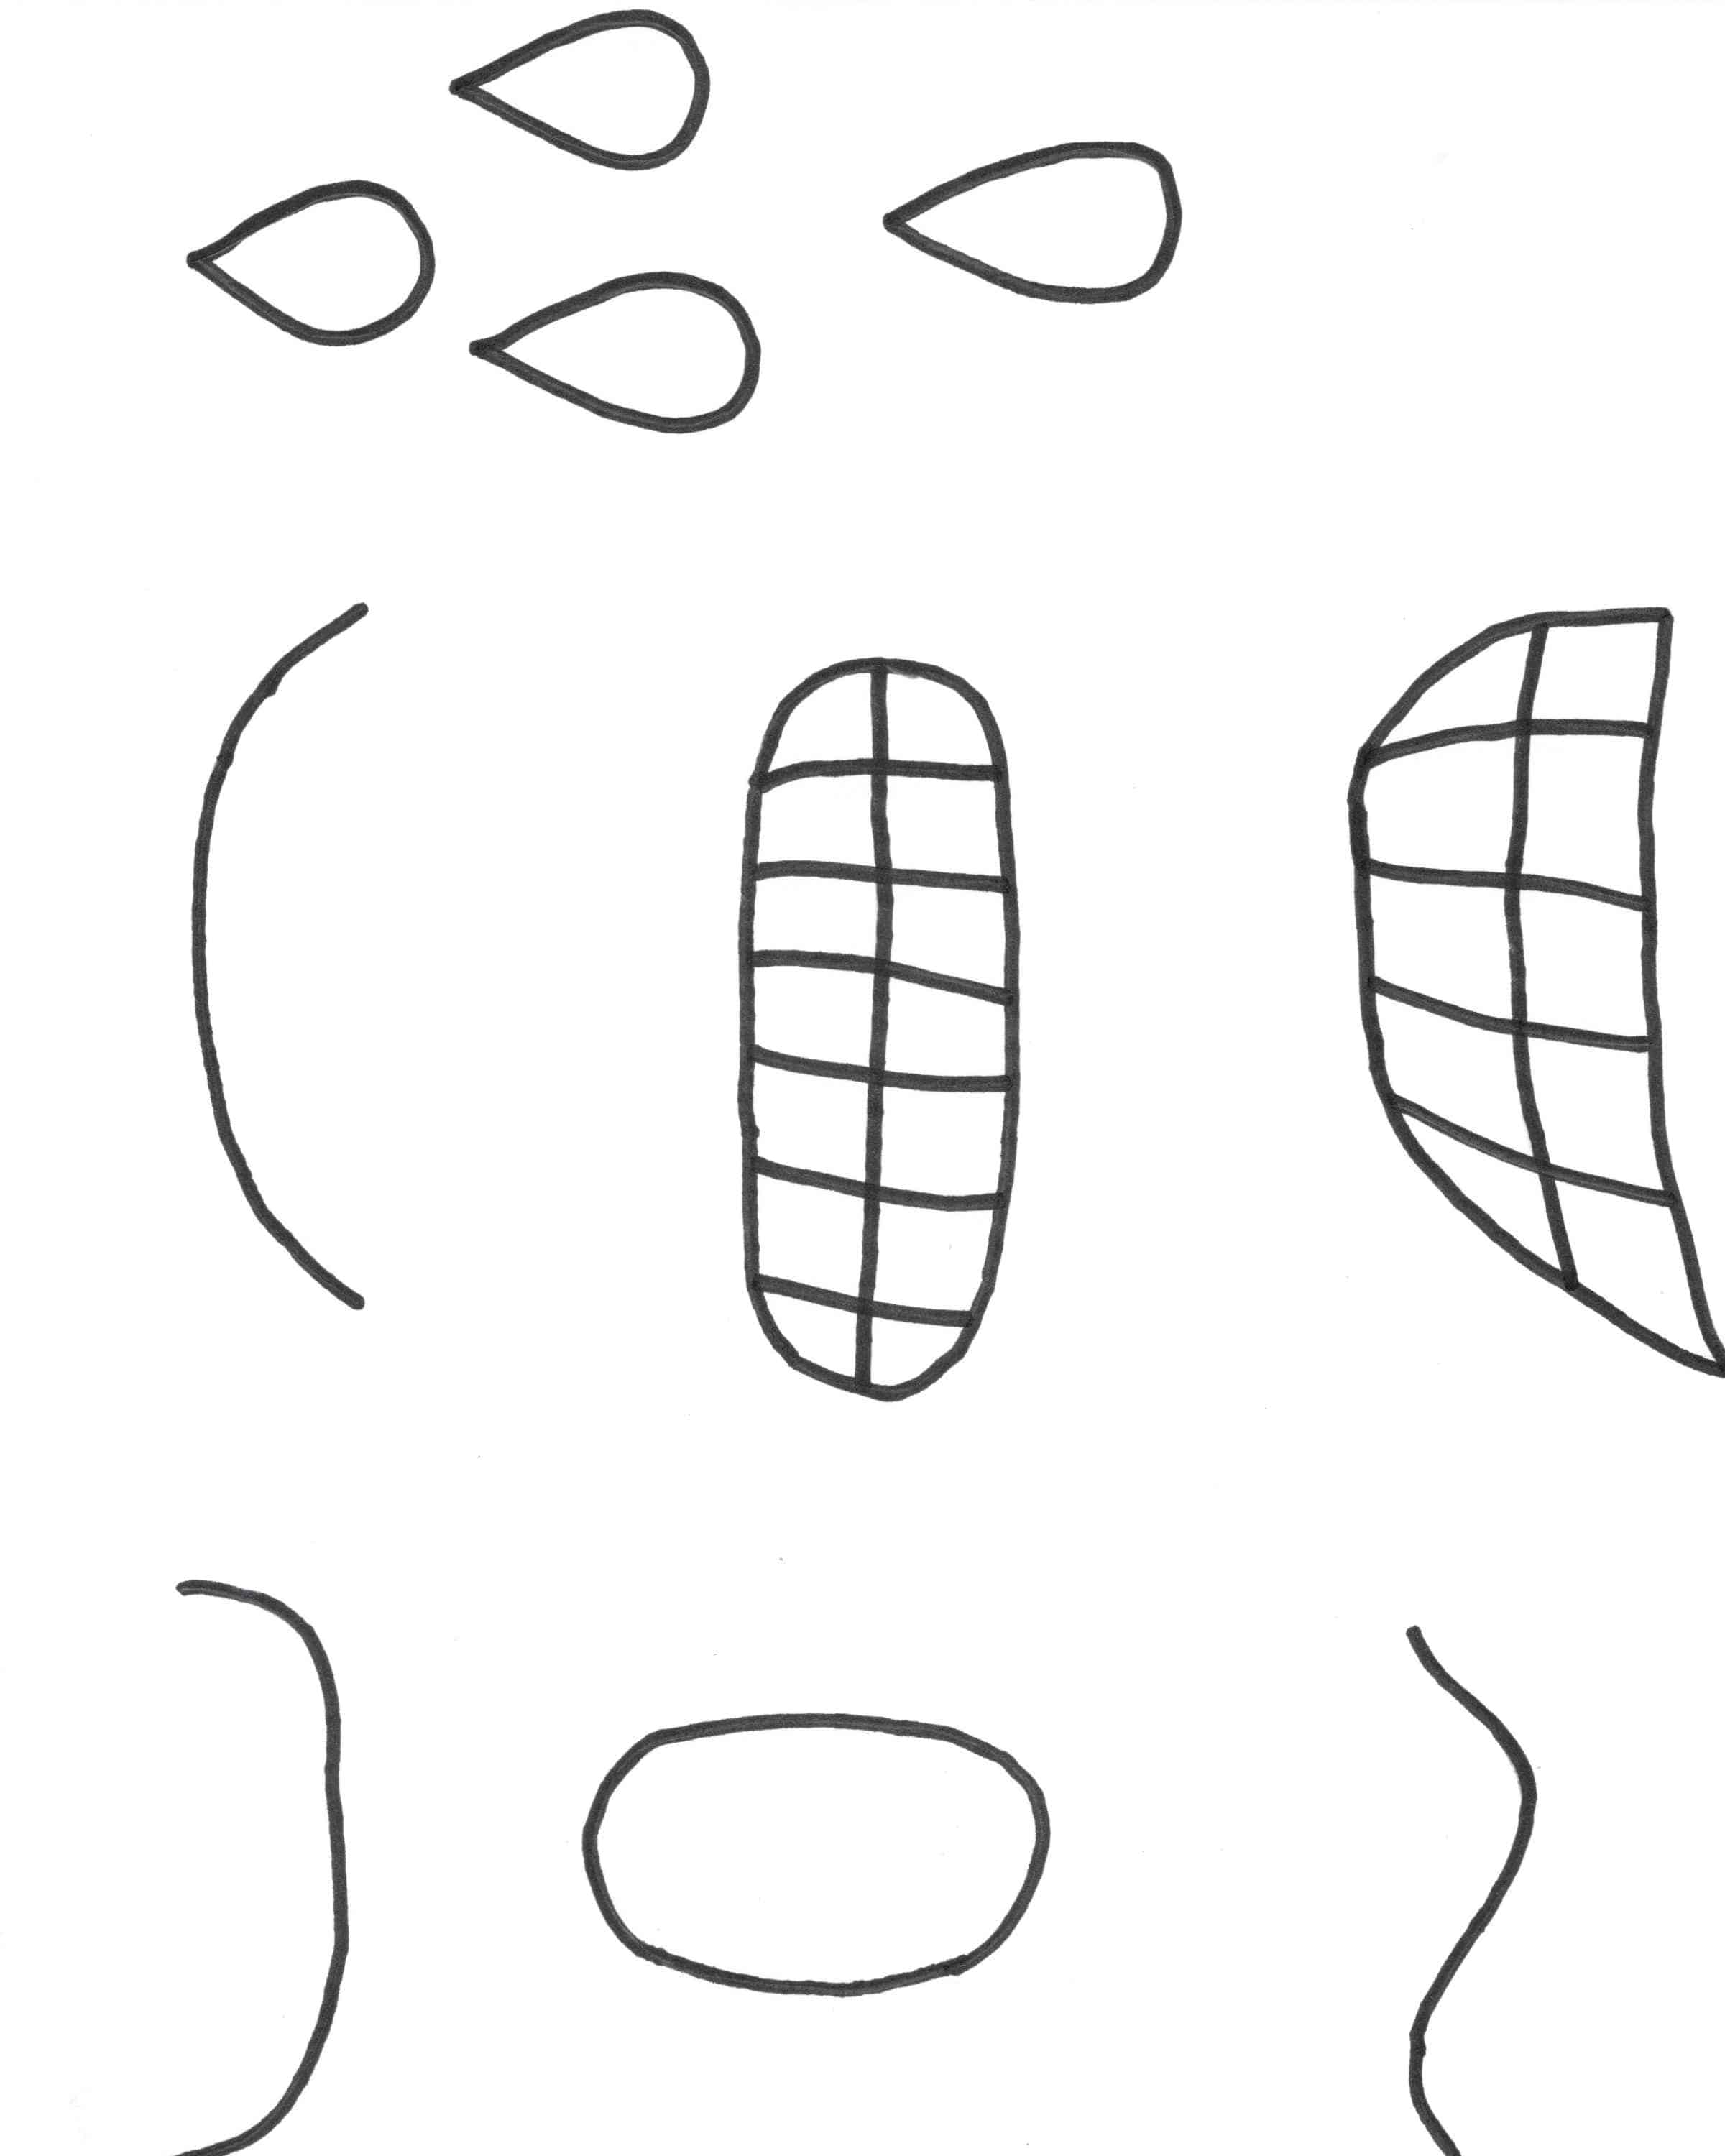 Free Printable Emotion Faces That Are Inventive